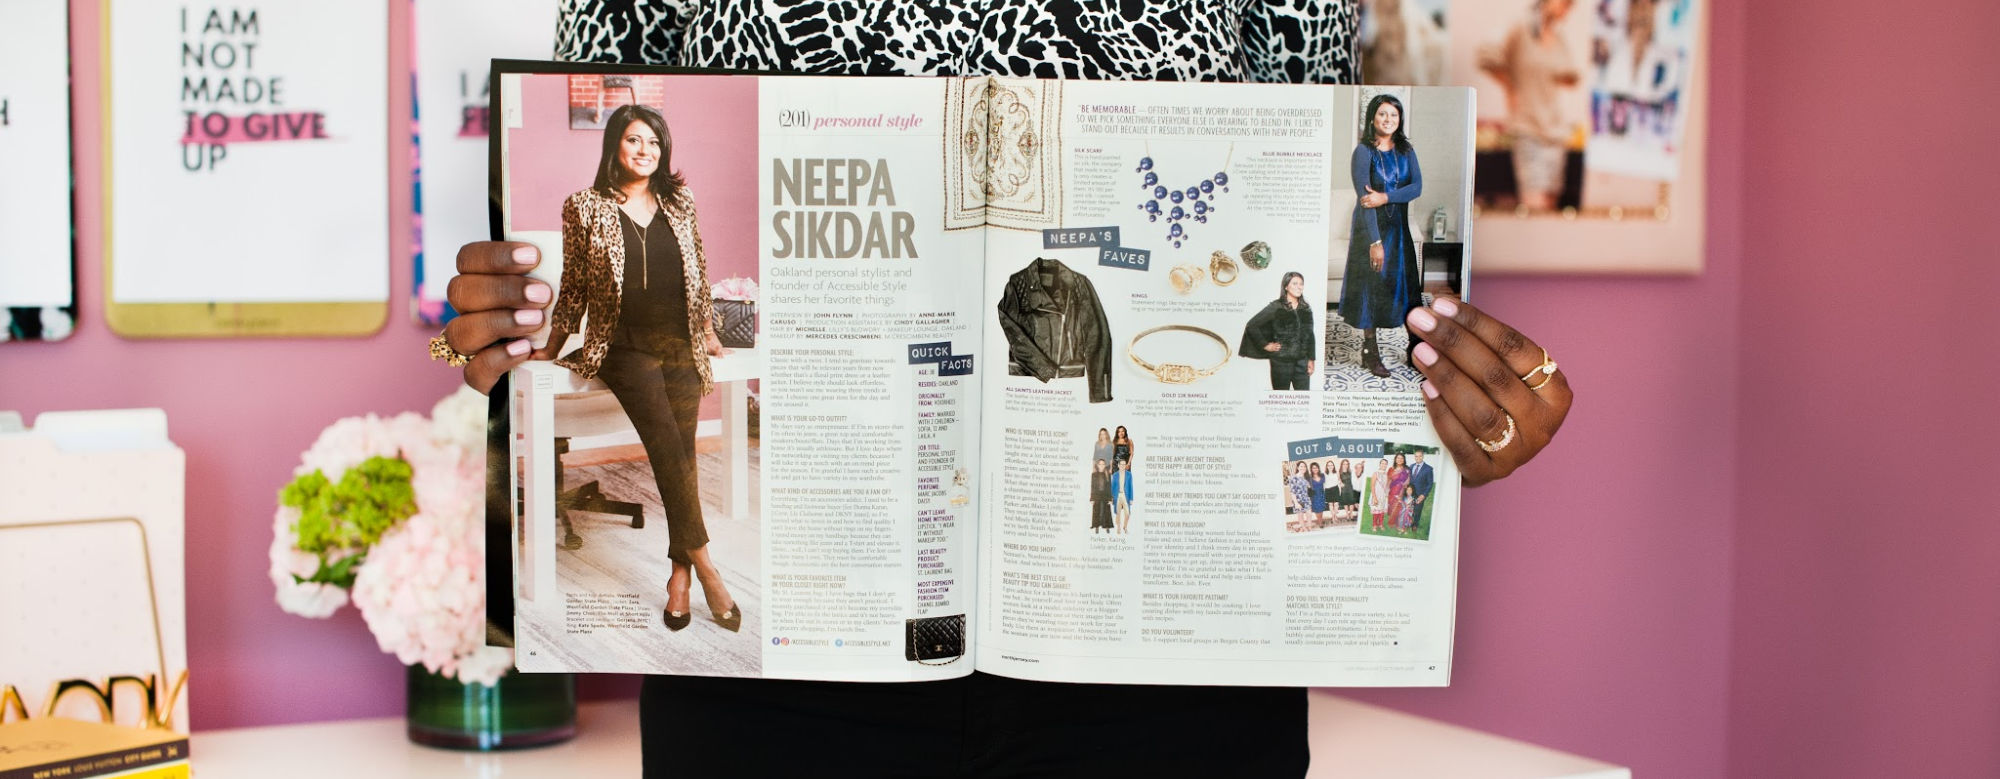 Accessible Style, NJ Personal Stylist Neepa Sikdar, Magazine Article spread